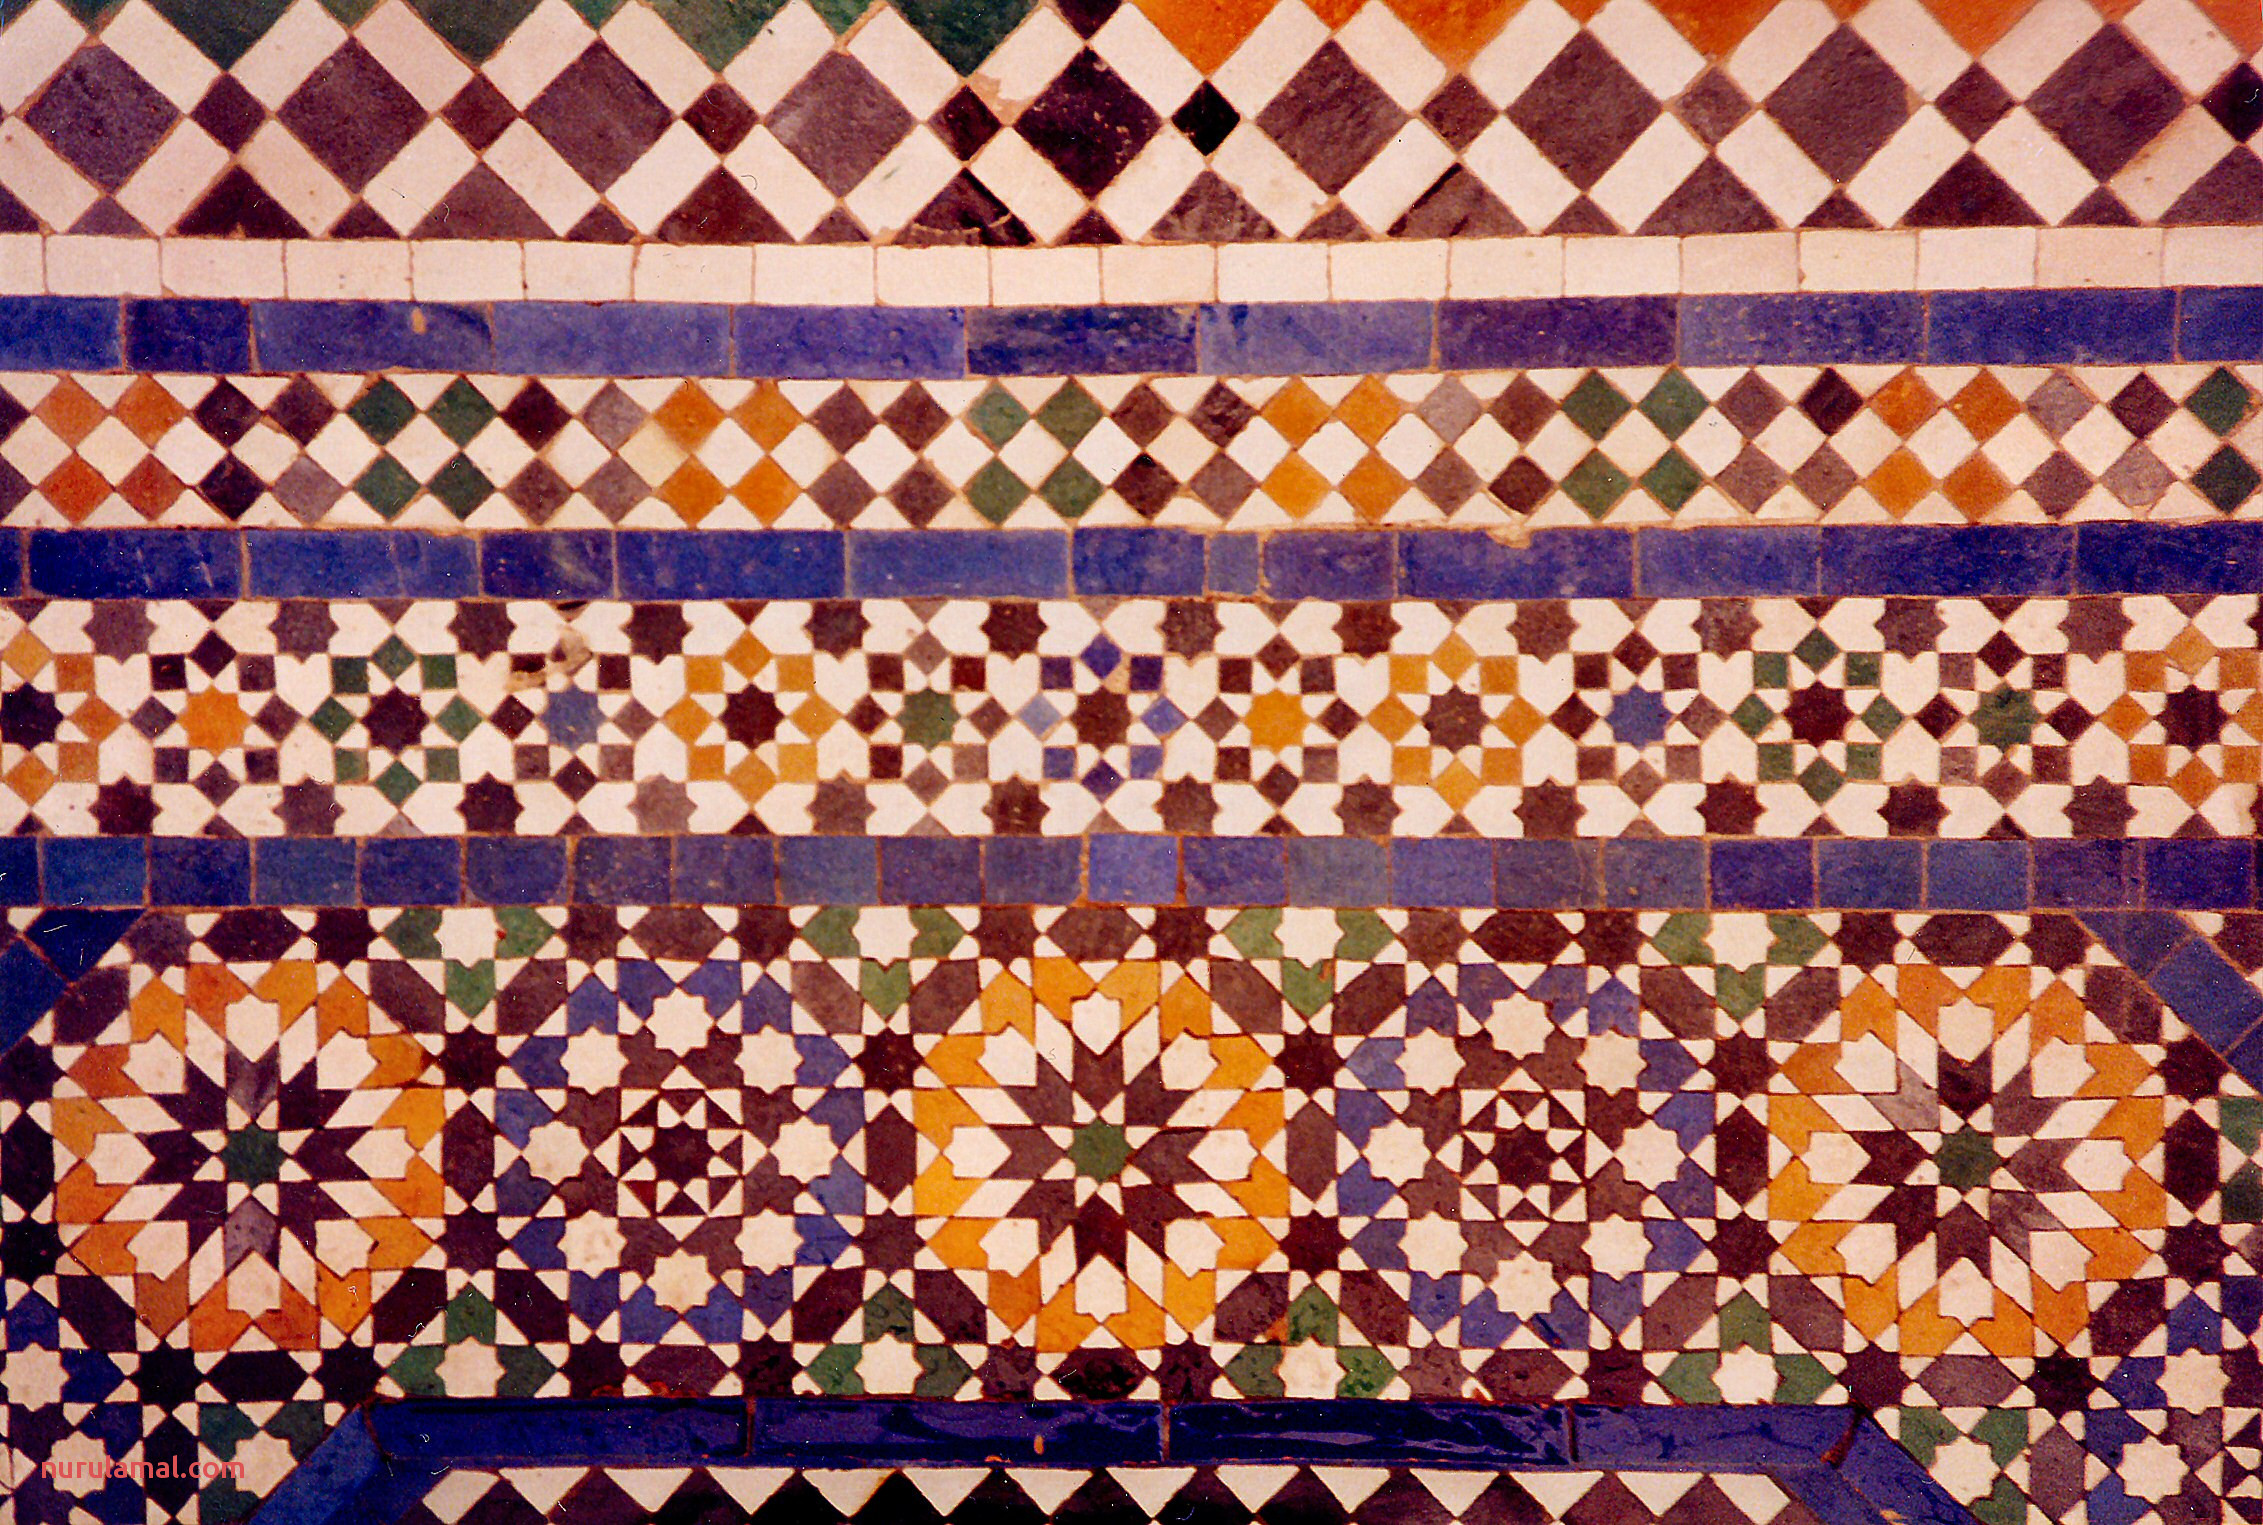 Ceramic Tile Tessellations in Marrakech